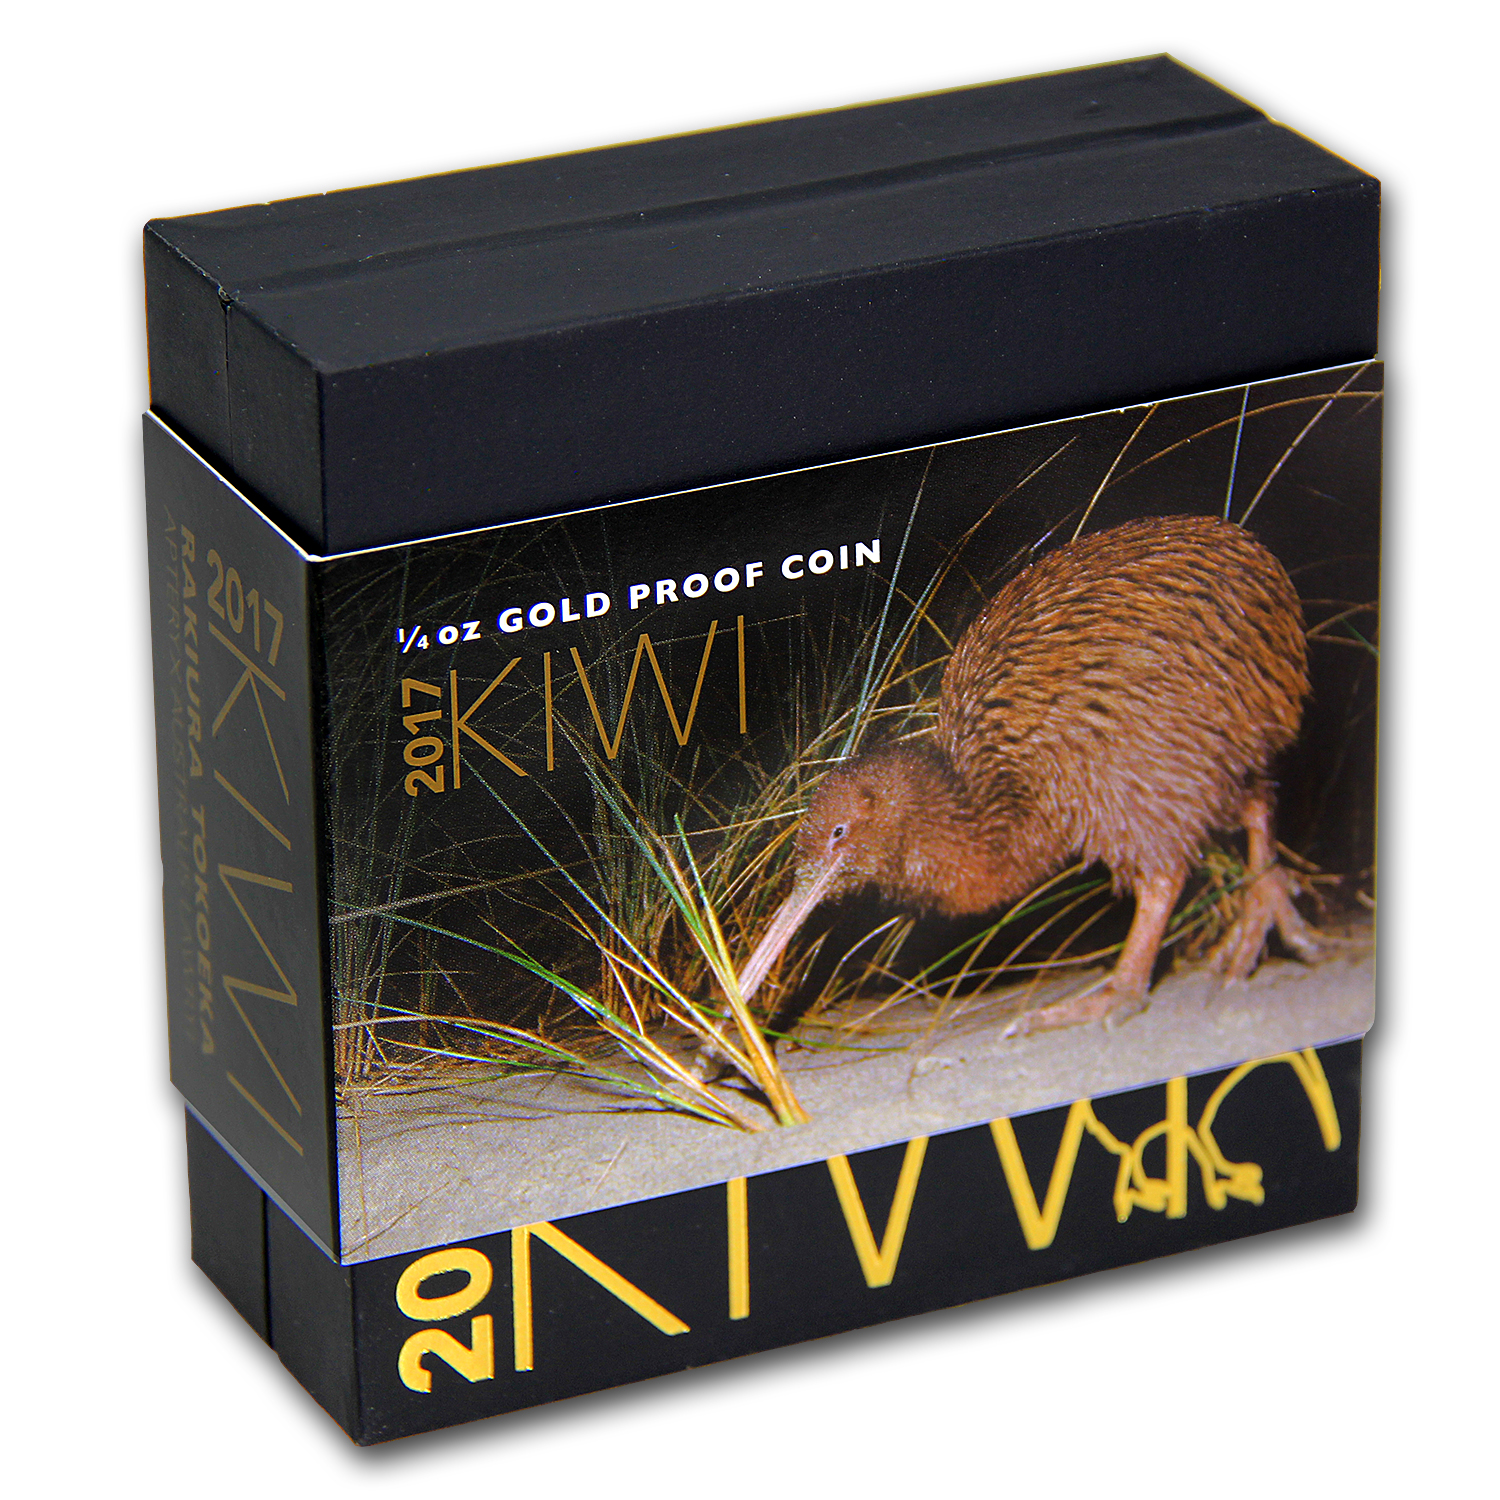 2017 New Zealand 1/4 oz Proof Gold $10 Kiwi